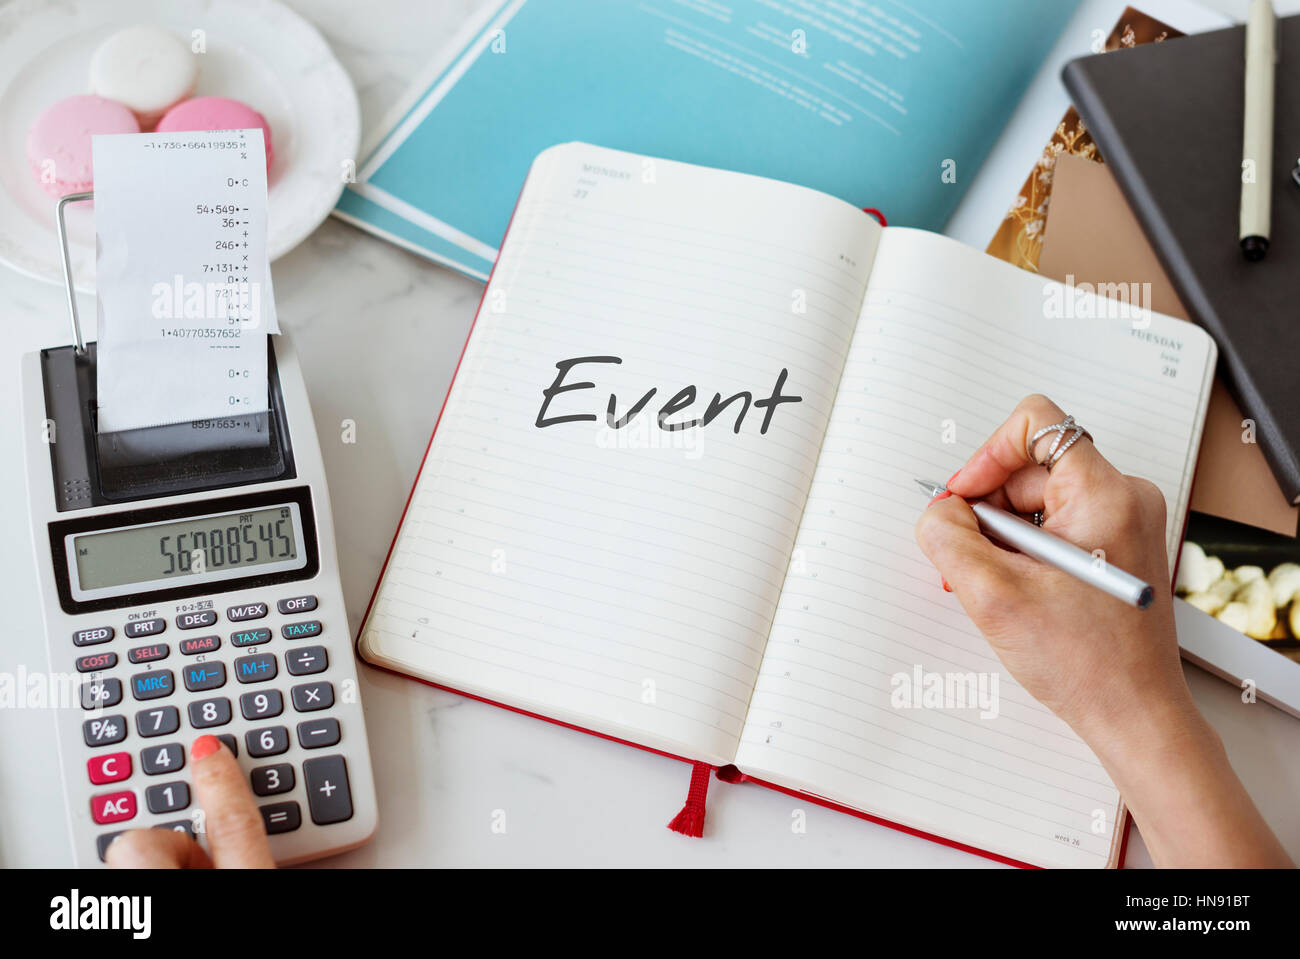 Timeline Event Period Duration Memories Concept - Stock Image